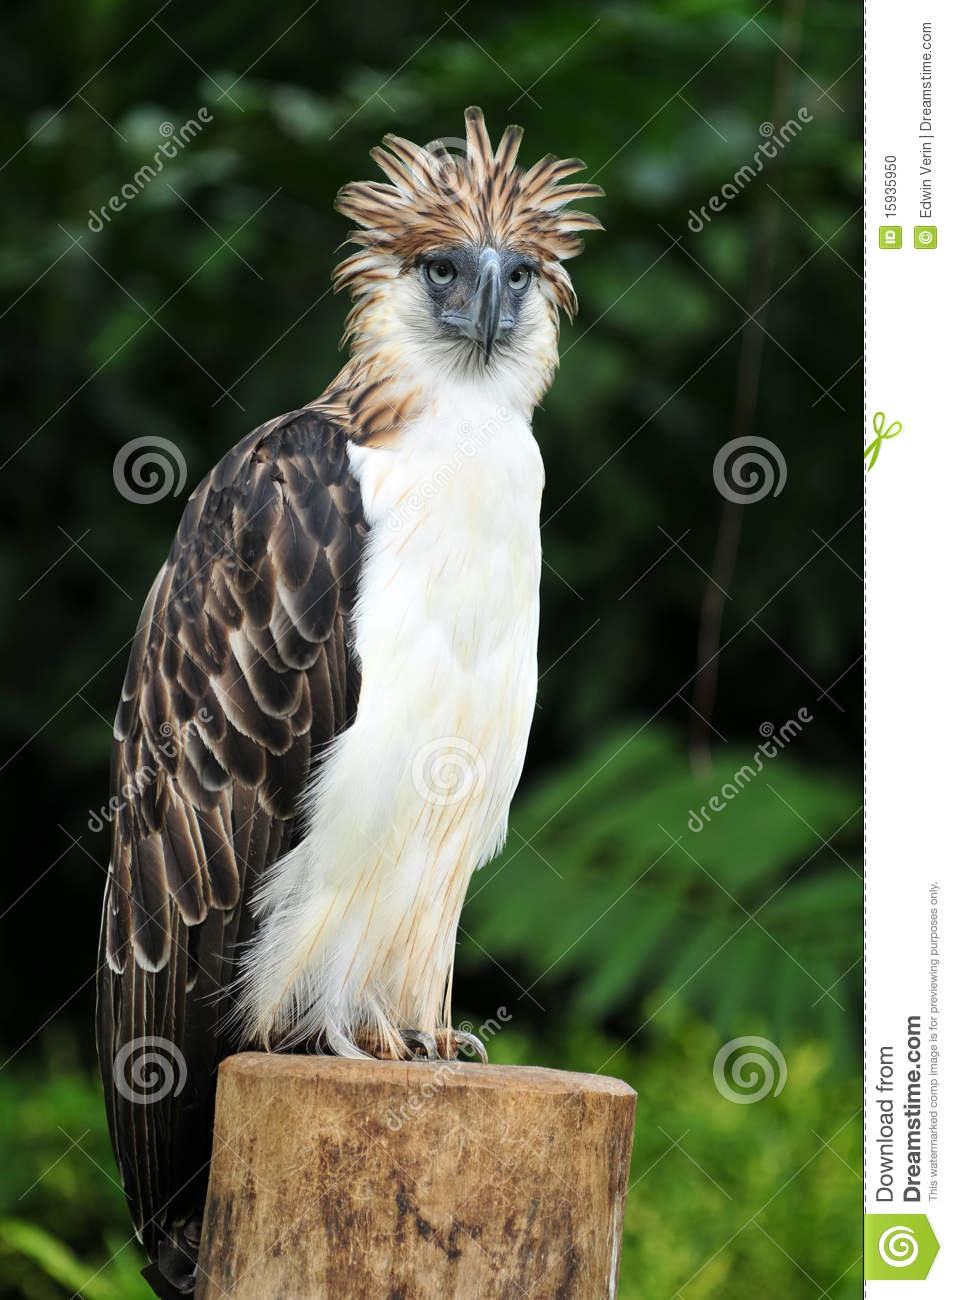 Philippine Eagle clipart #19, Download drawings